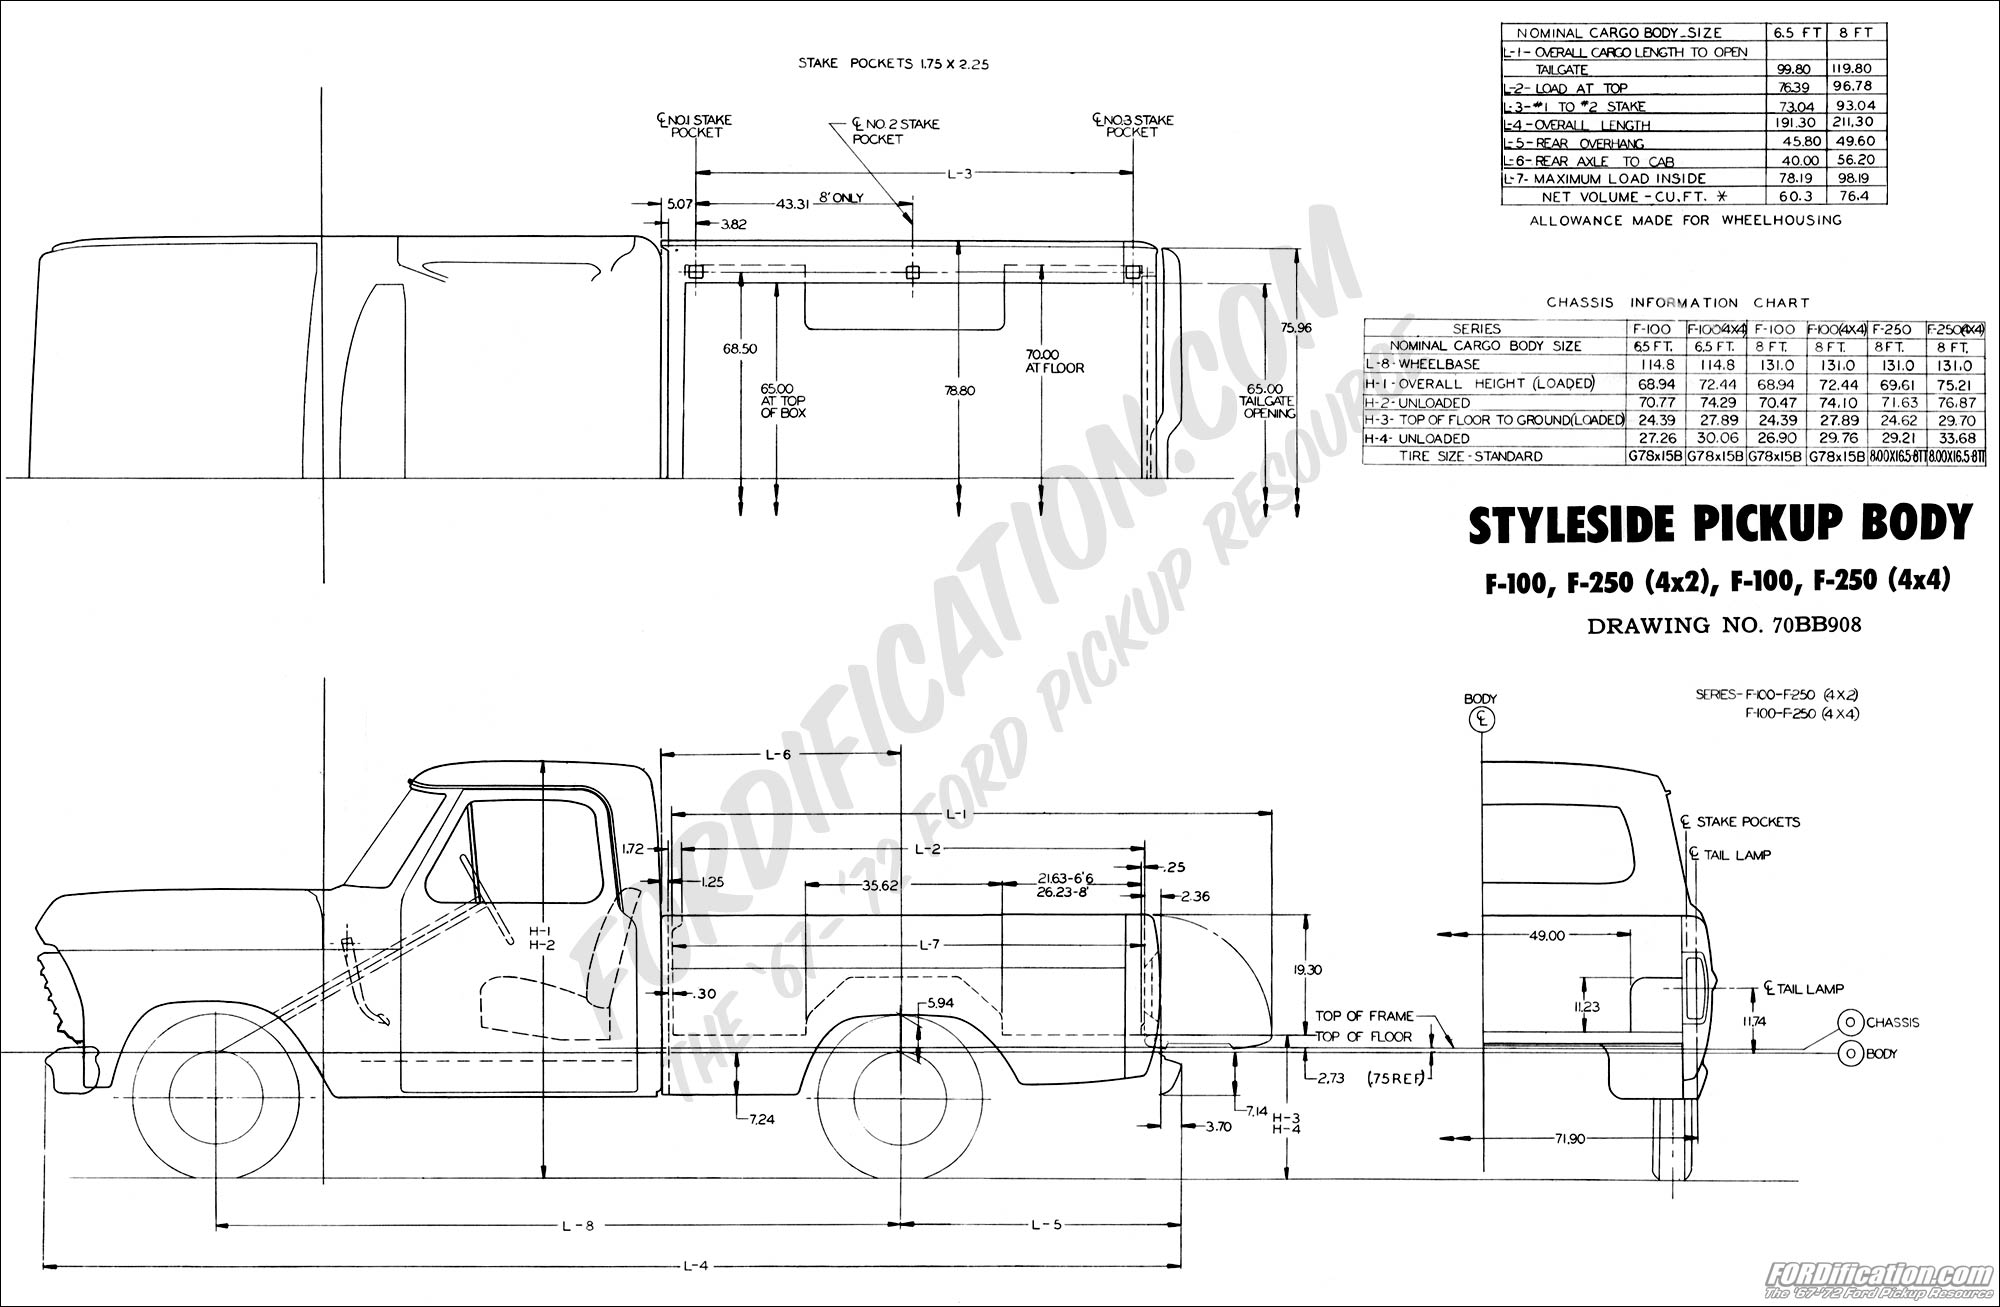 1964 Ford F100 Wiring Diagrams on studebaker wiring diagrams